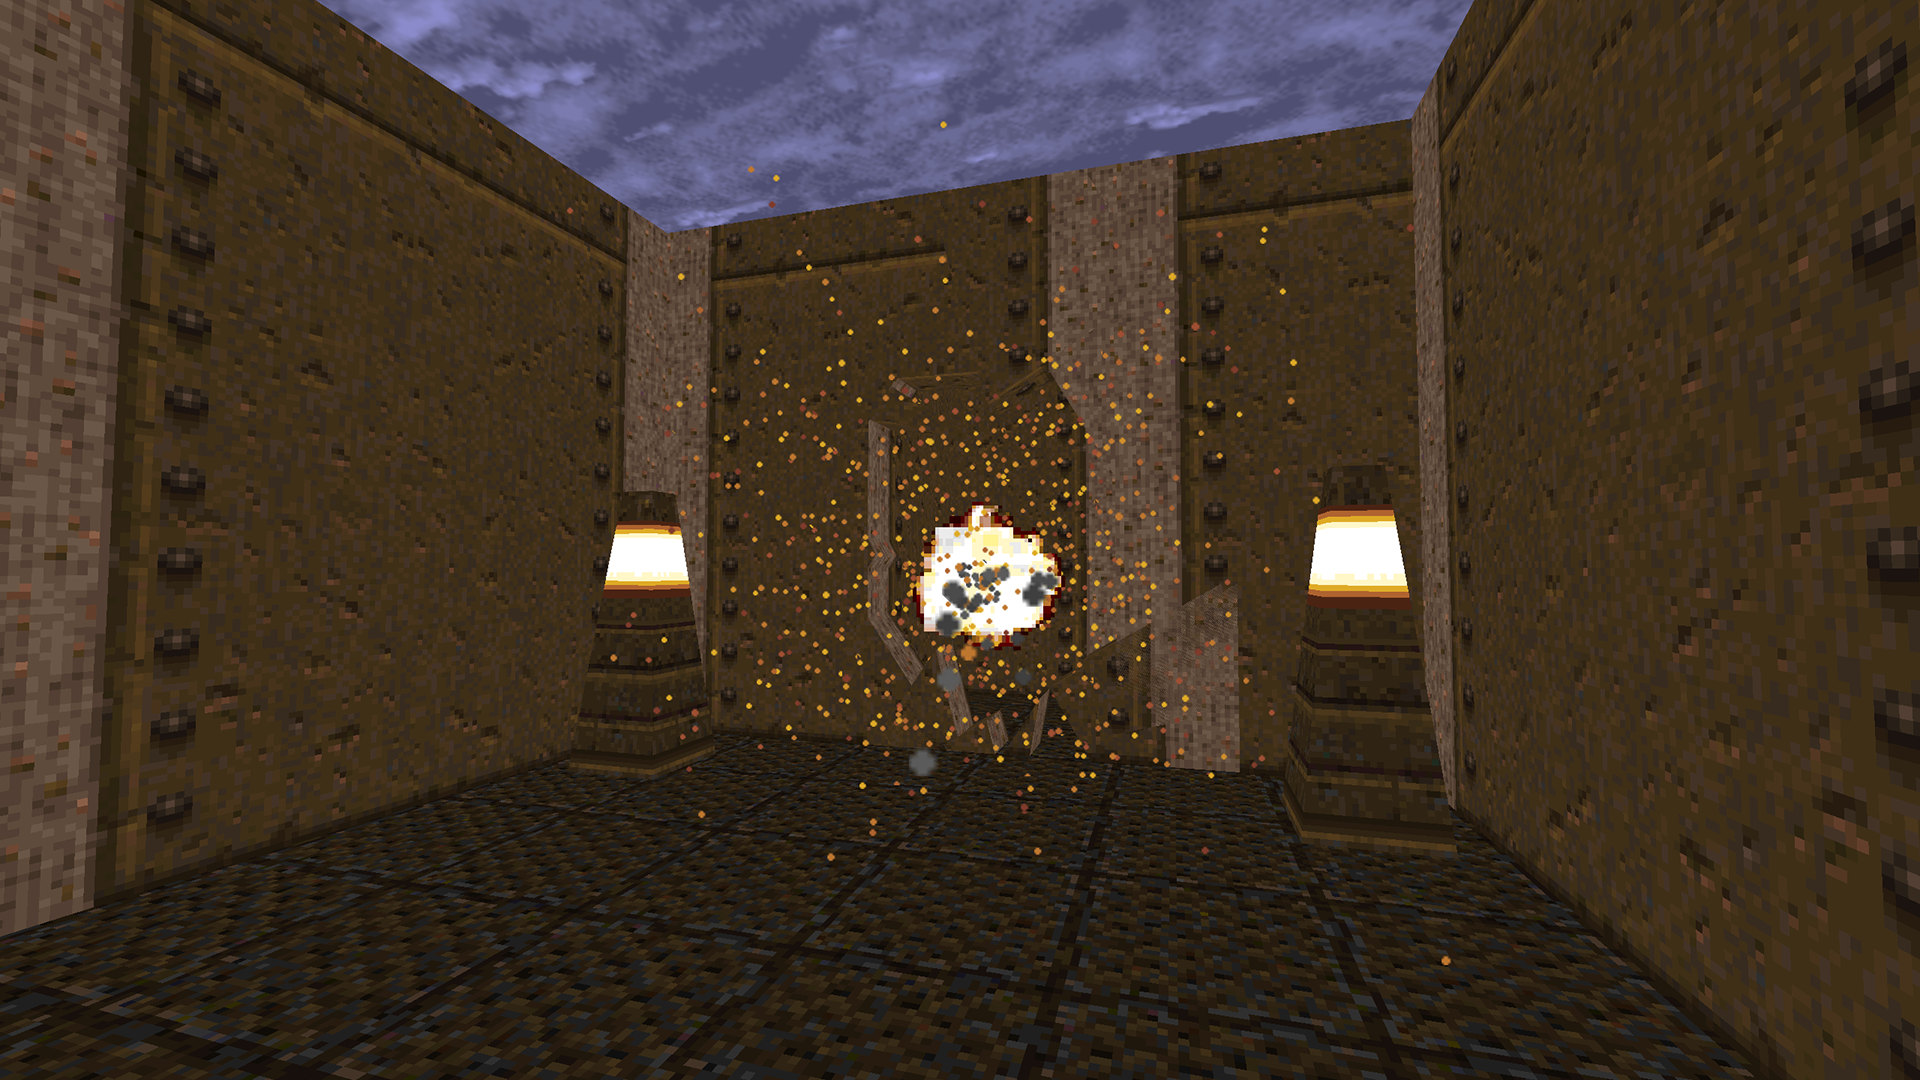 Exploding Wall - from The QuakeLab